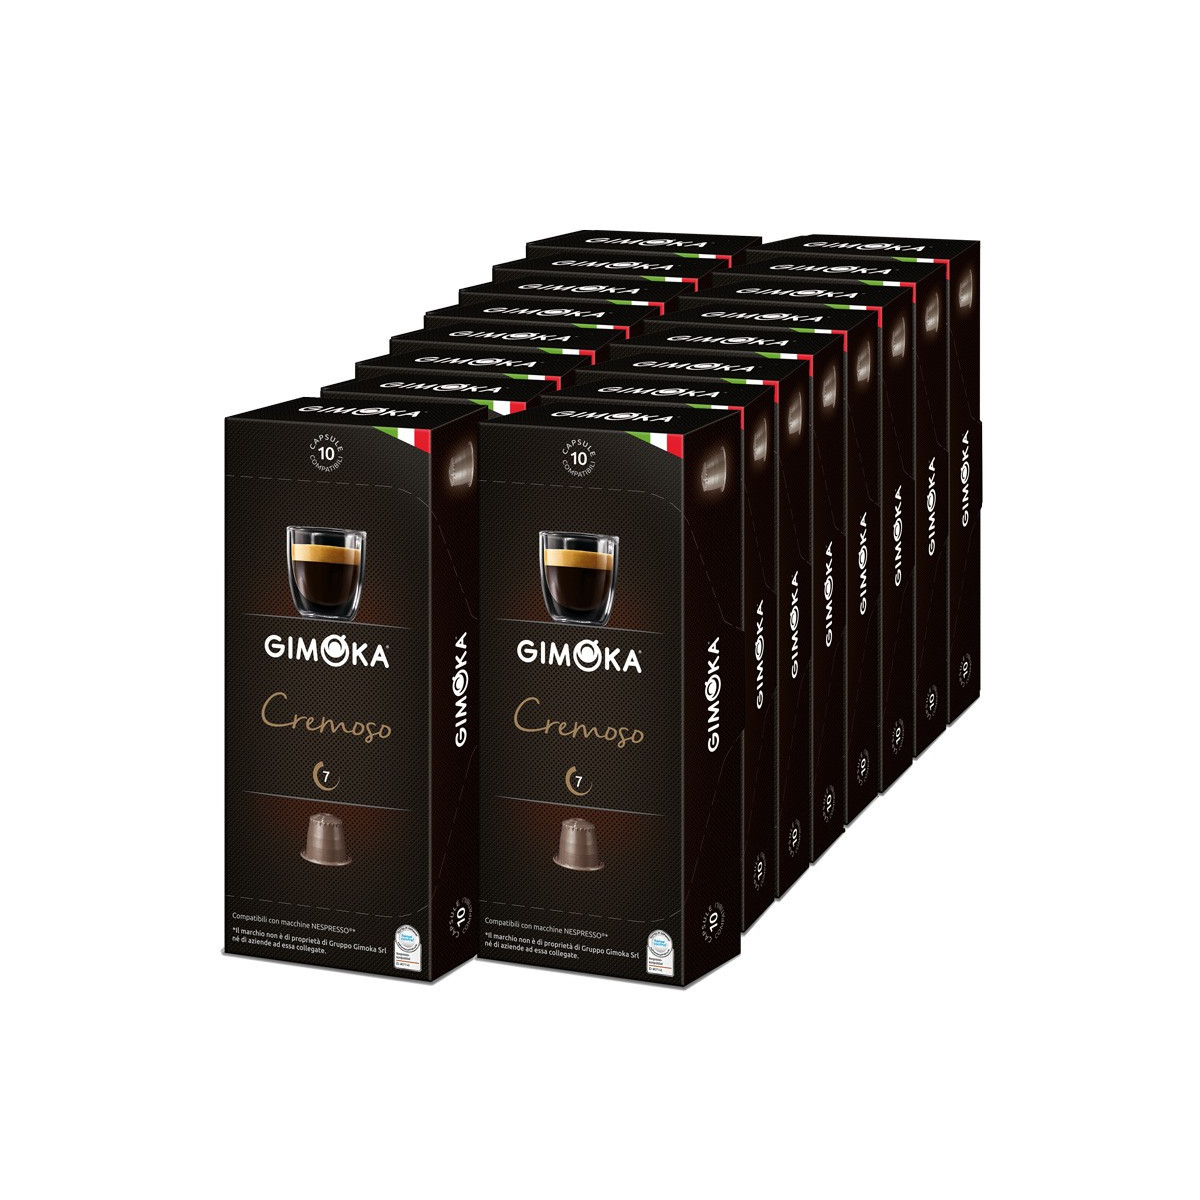 capsule nespresso compatible gimoka cremoso 20 boites 200 capsules. Black Bedroom Furniture Sets. Home Design Ideas